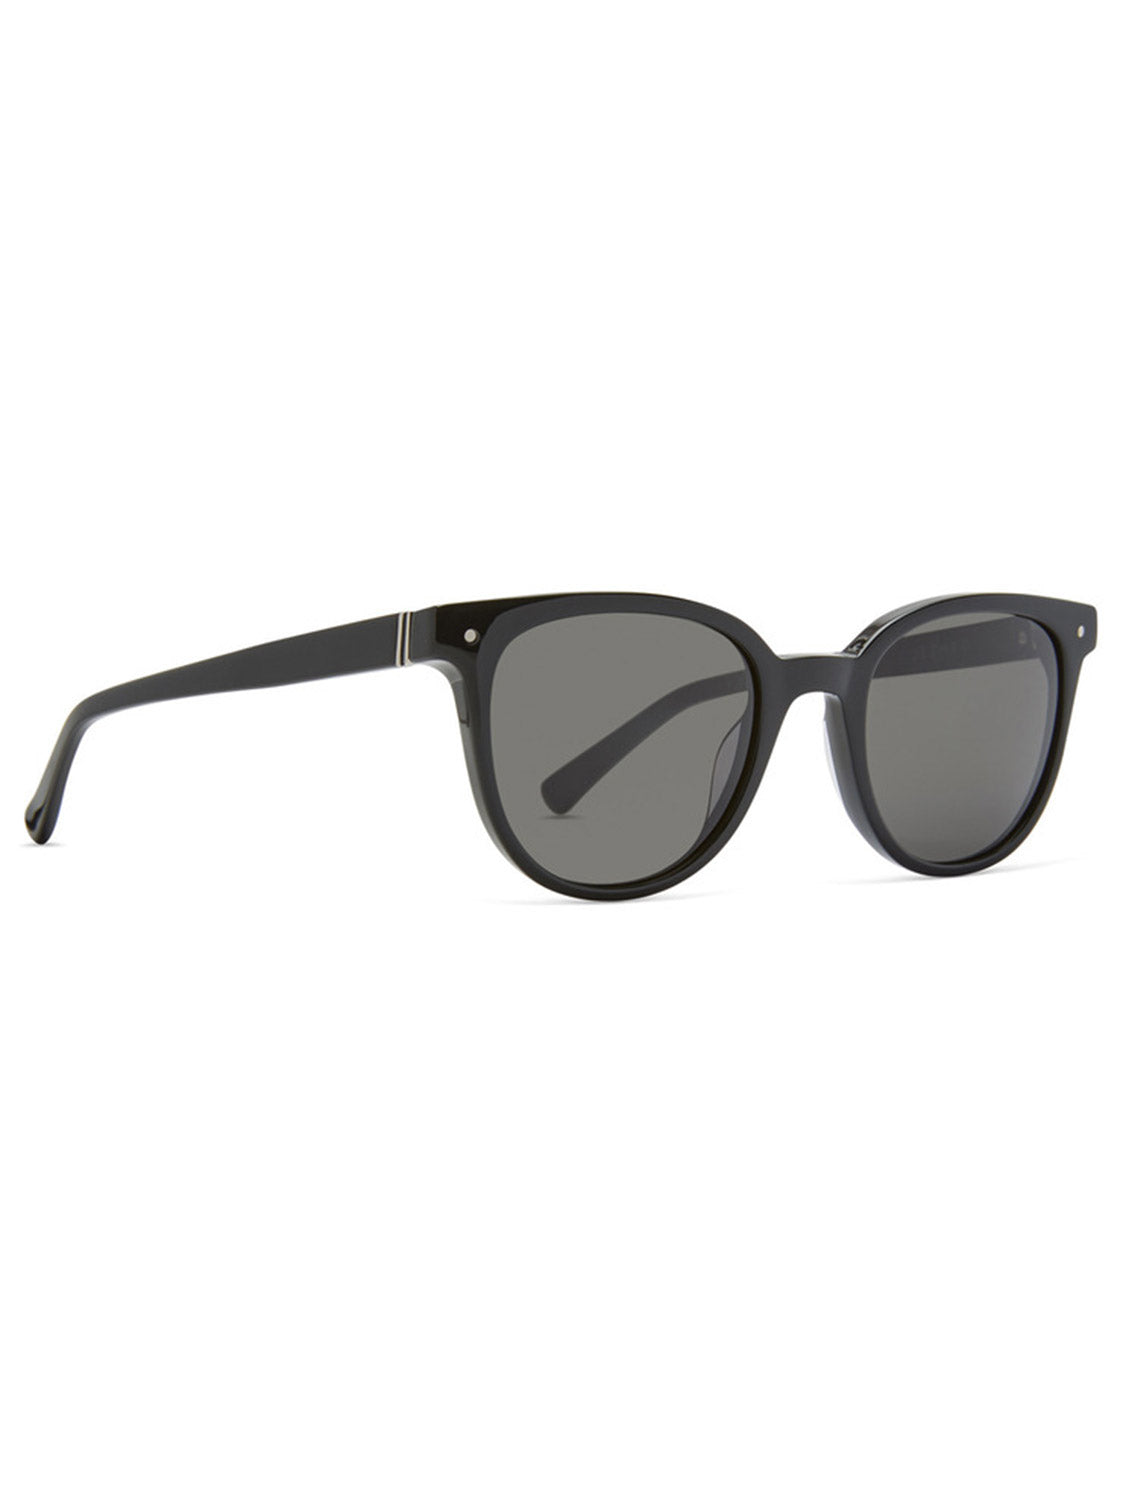 VonZipper Jethro Sunglasses